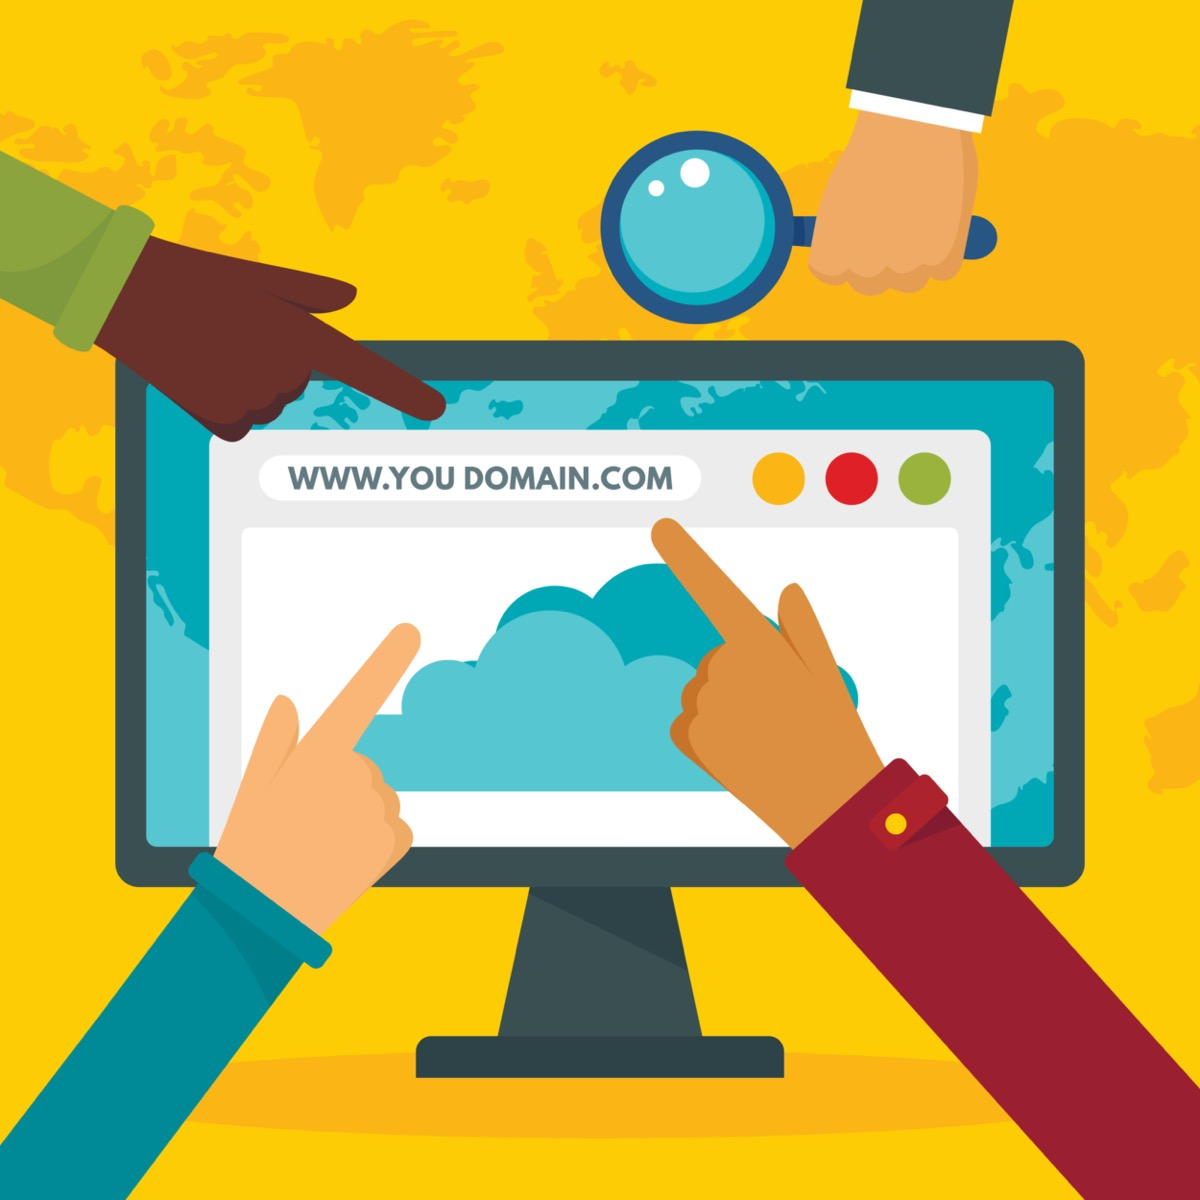 Should You Use Your Own Name as Domain Name? Pros and Cons